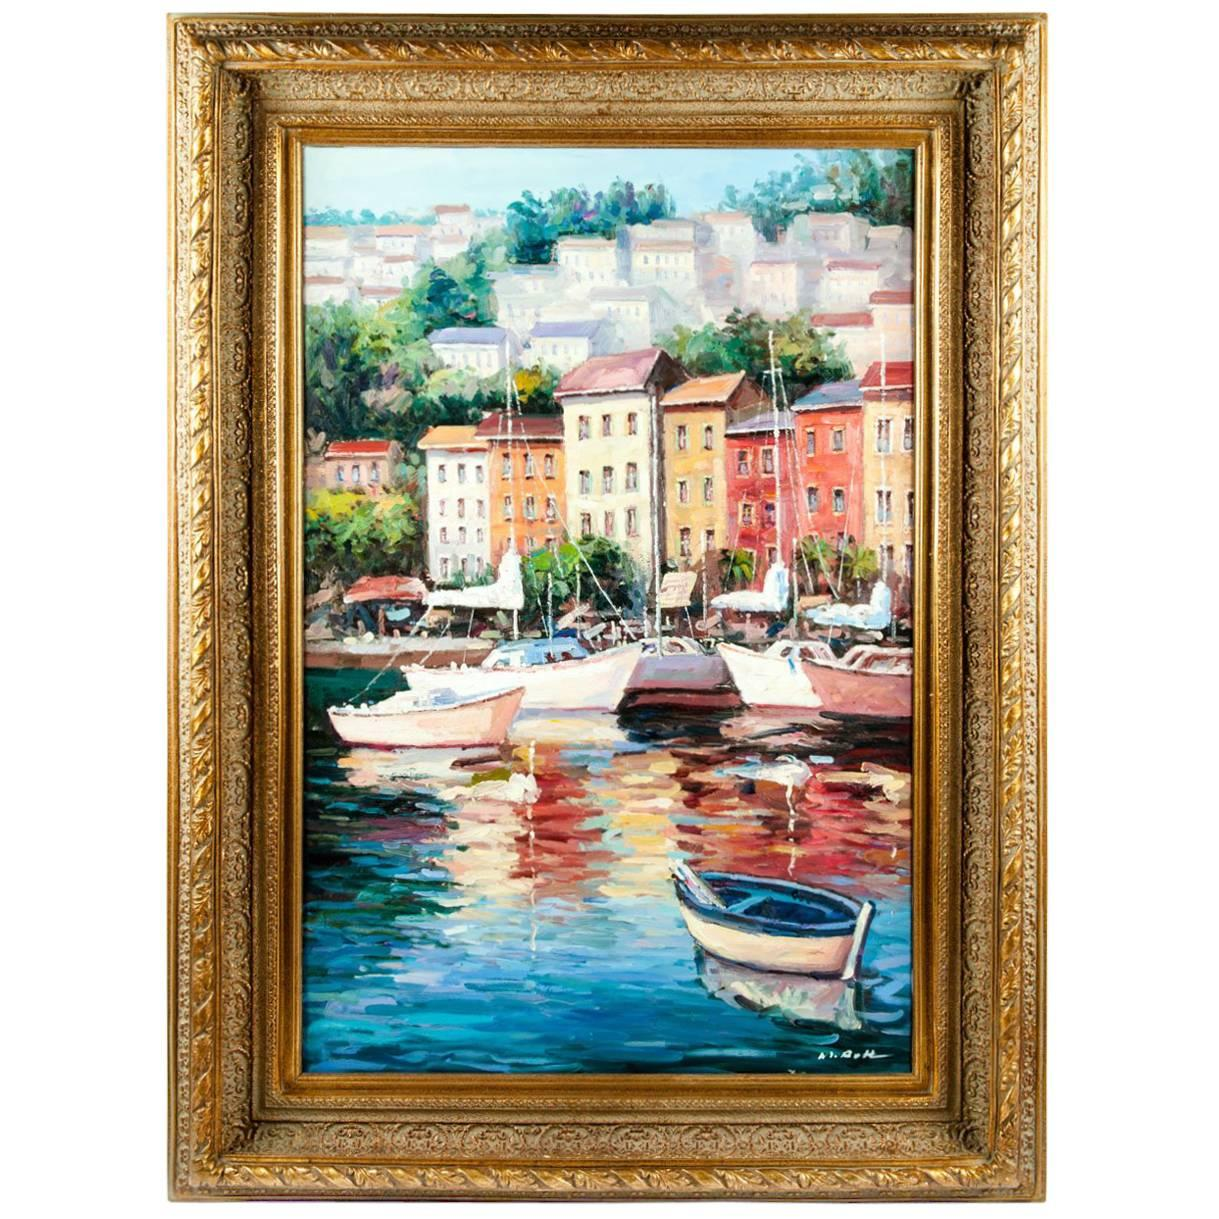 Gilded Wood Frame Oil on Canvas Decorative Painting